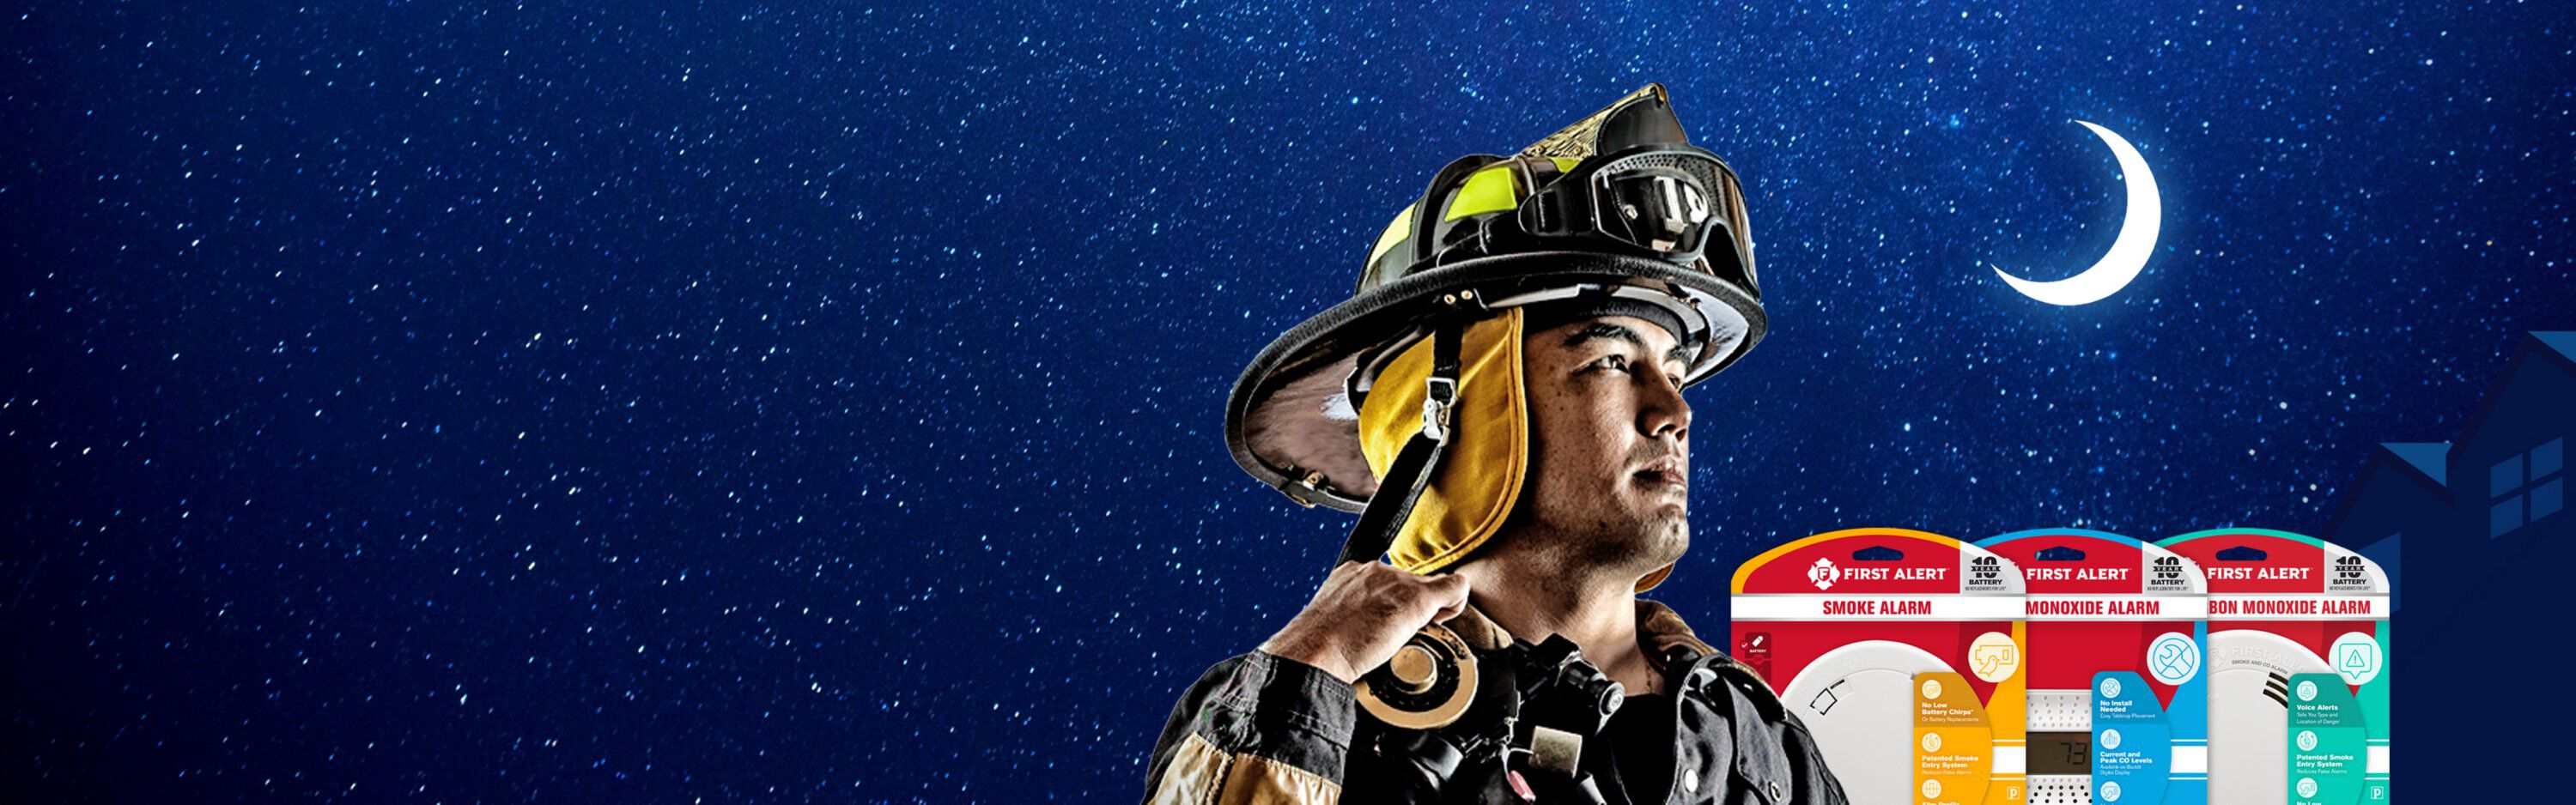 first alert fire safety products